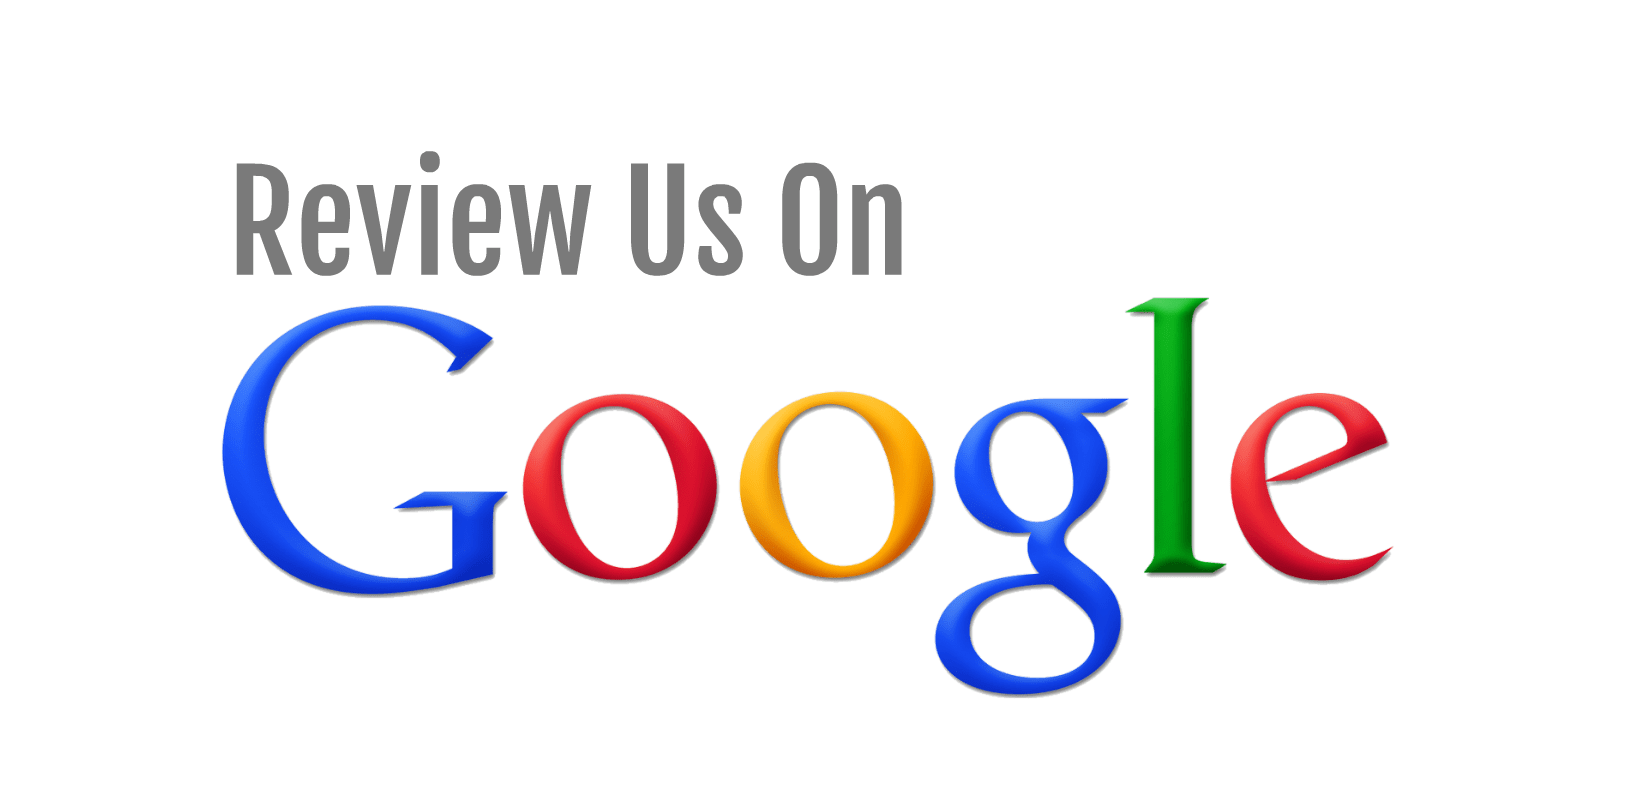 Google-Review-Link-For-HS-Tutorial